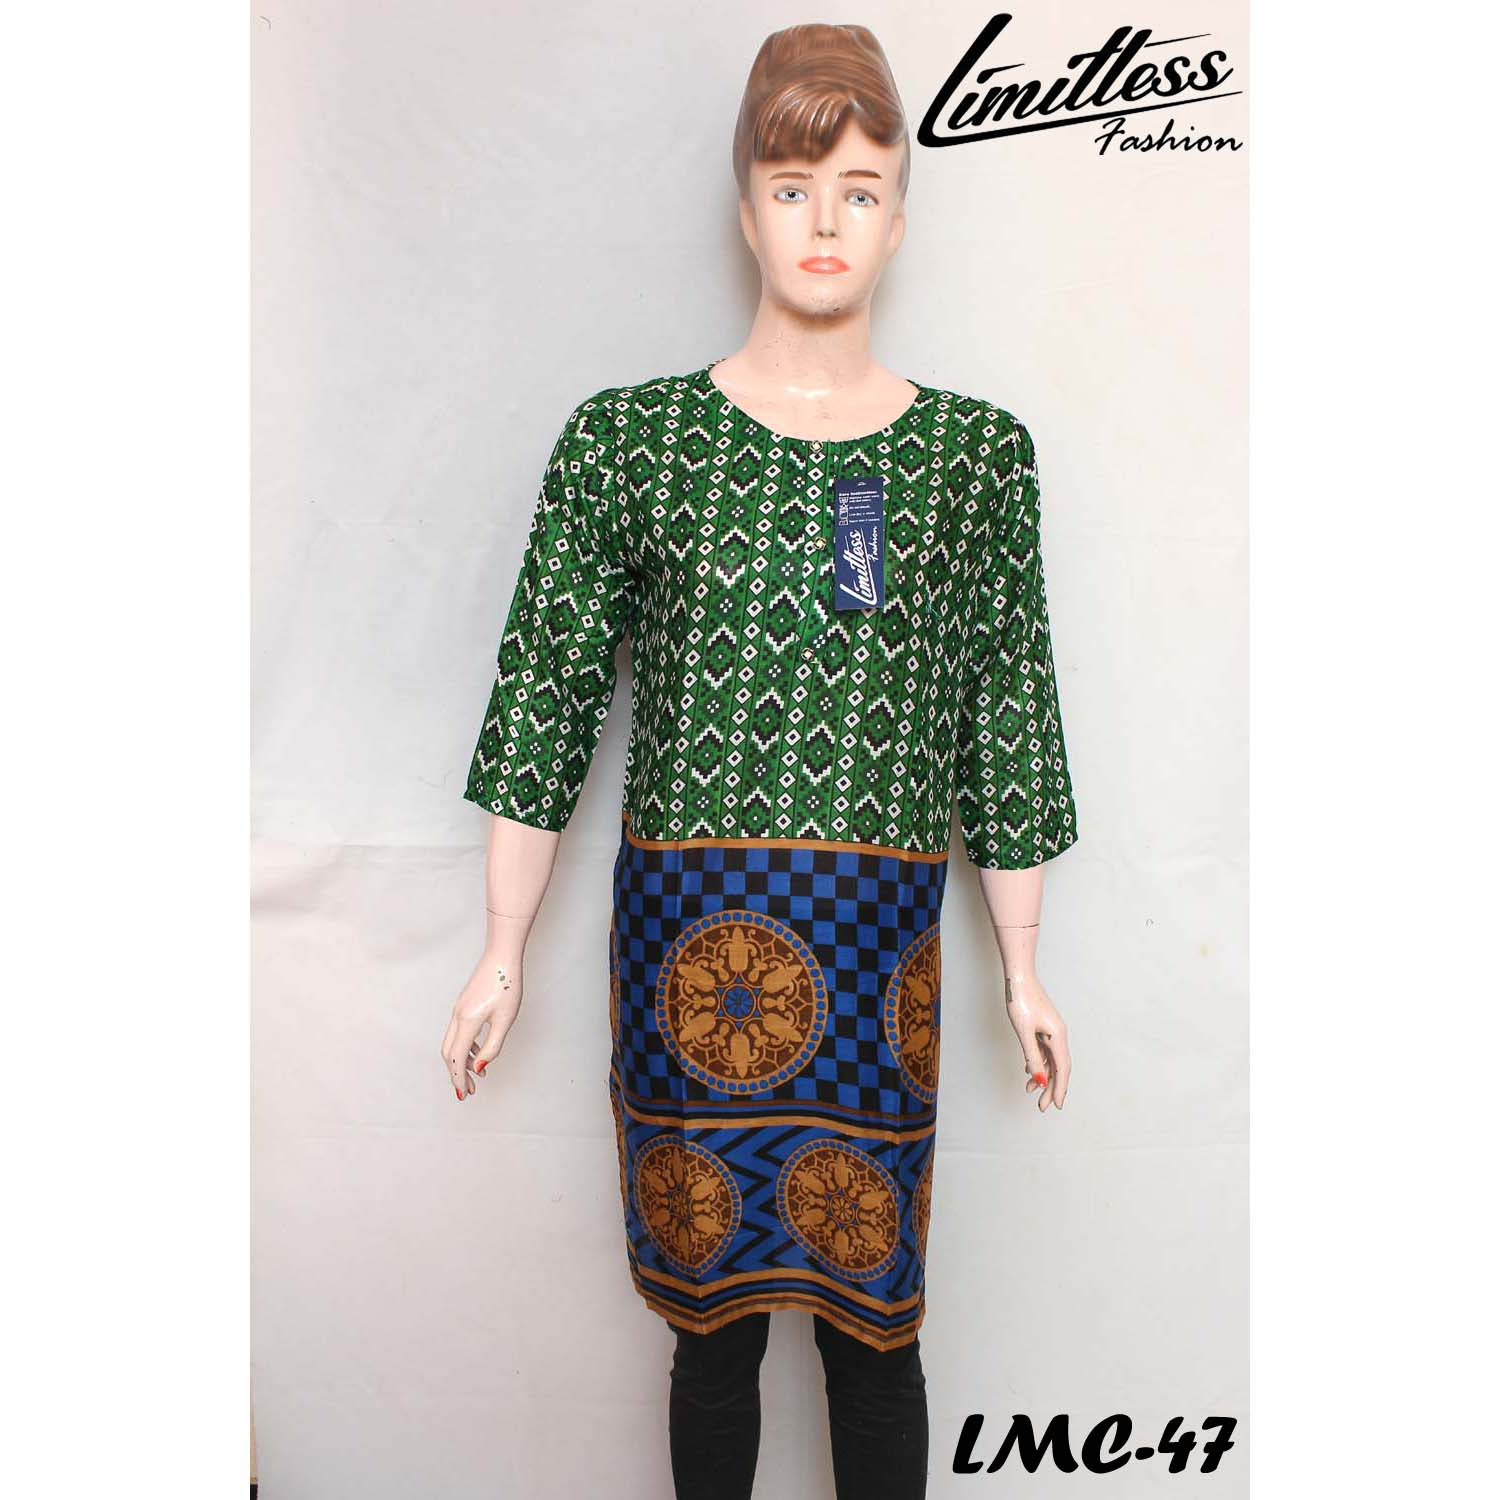 New & Latest Printed Lawn Stitched Kurti for Girls & Women's in Medium - LMC-47